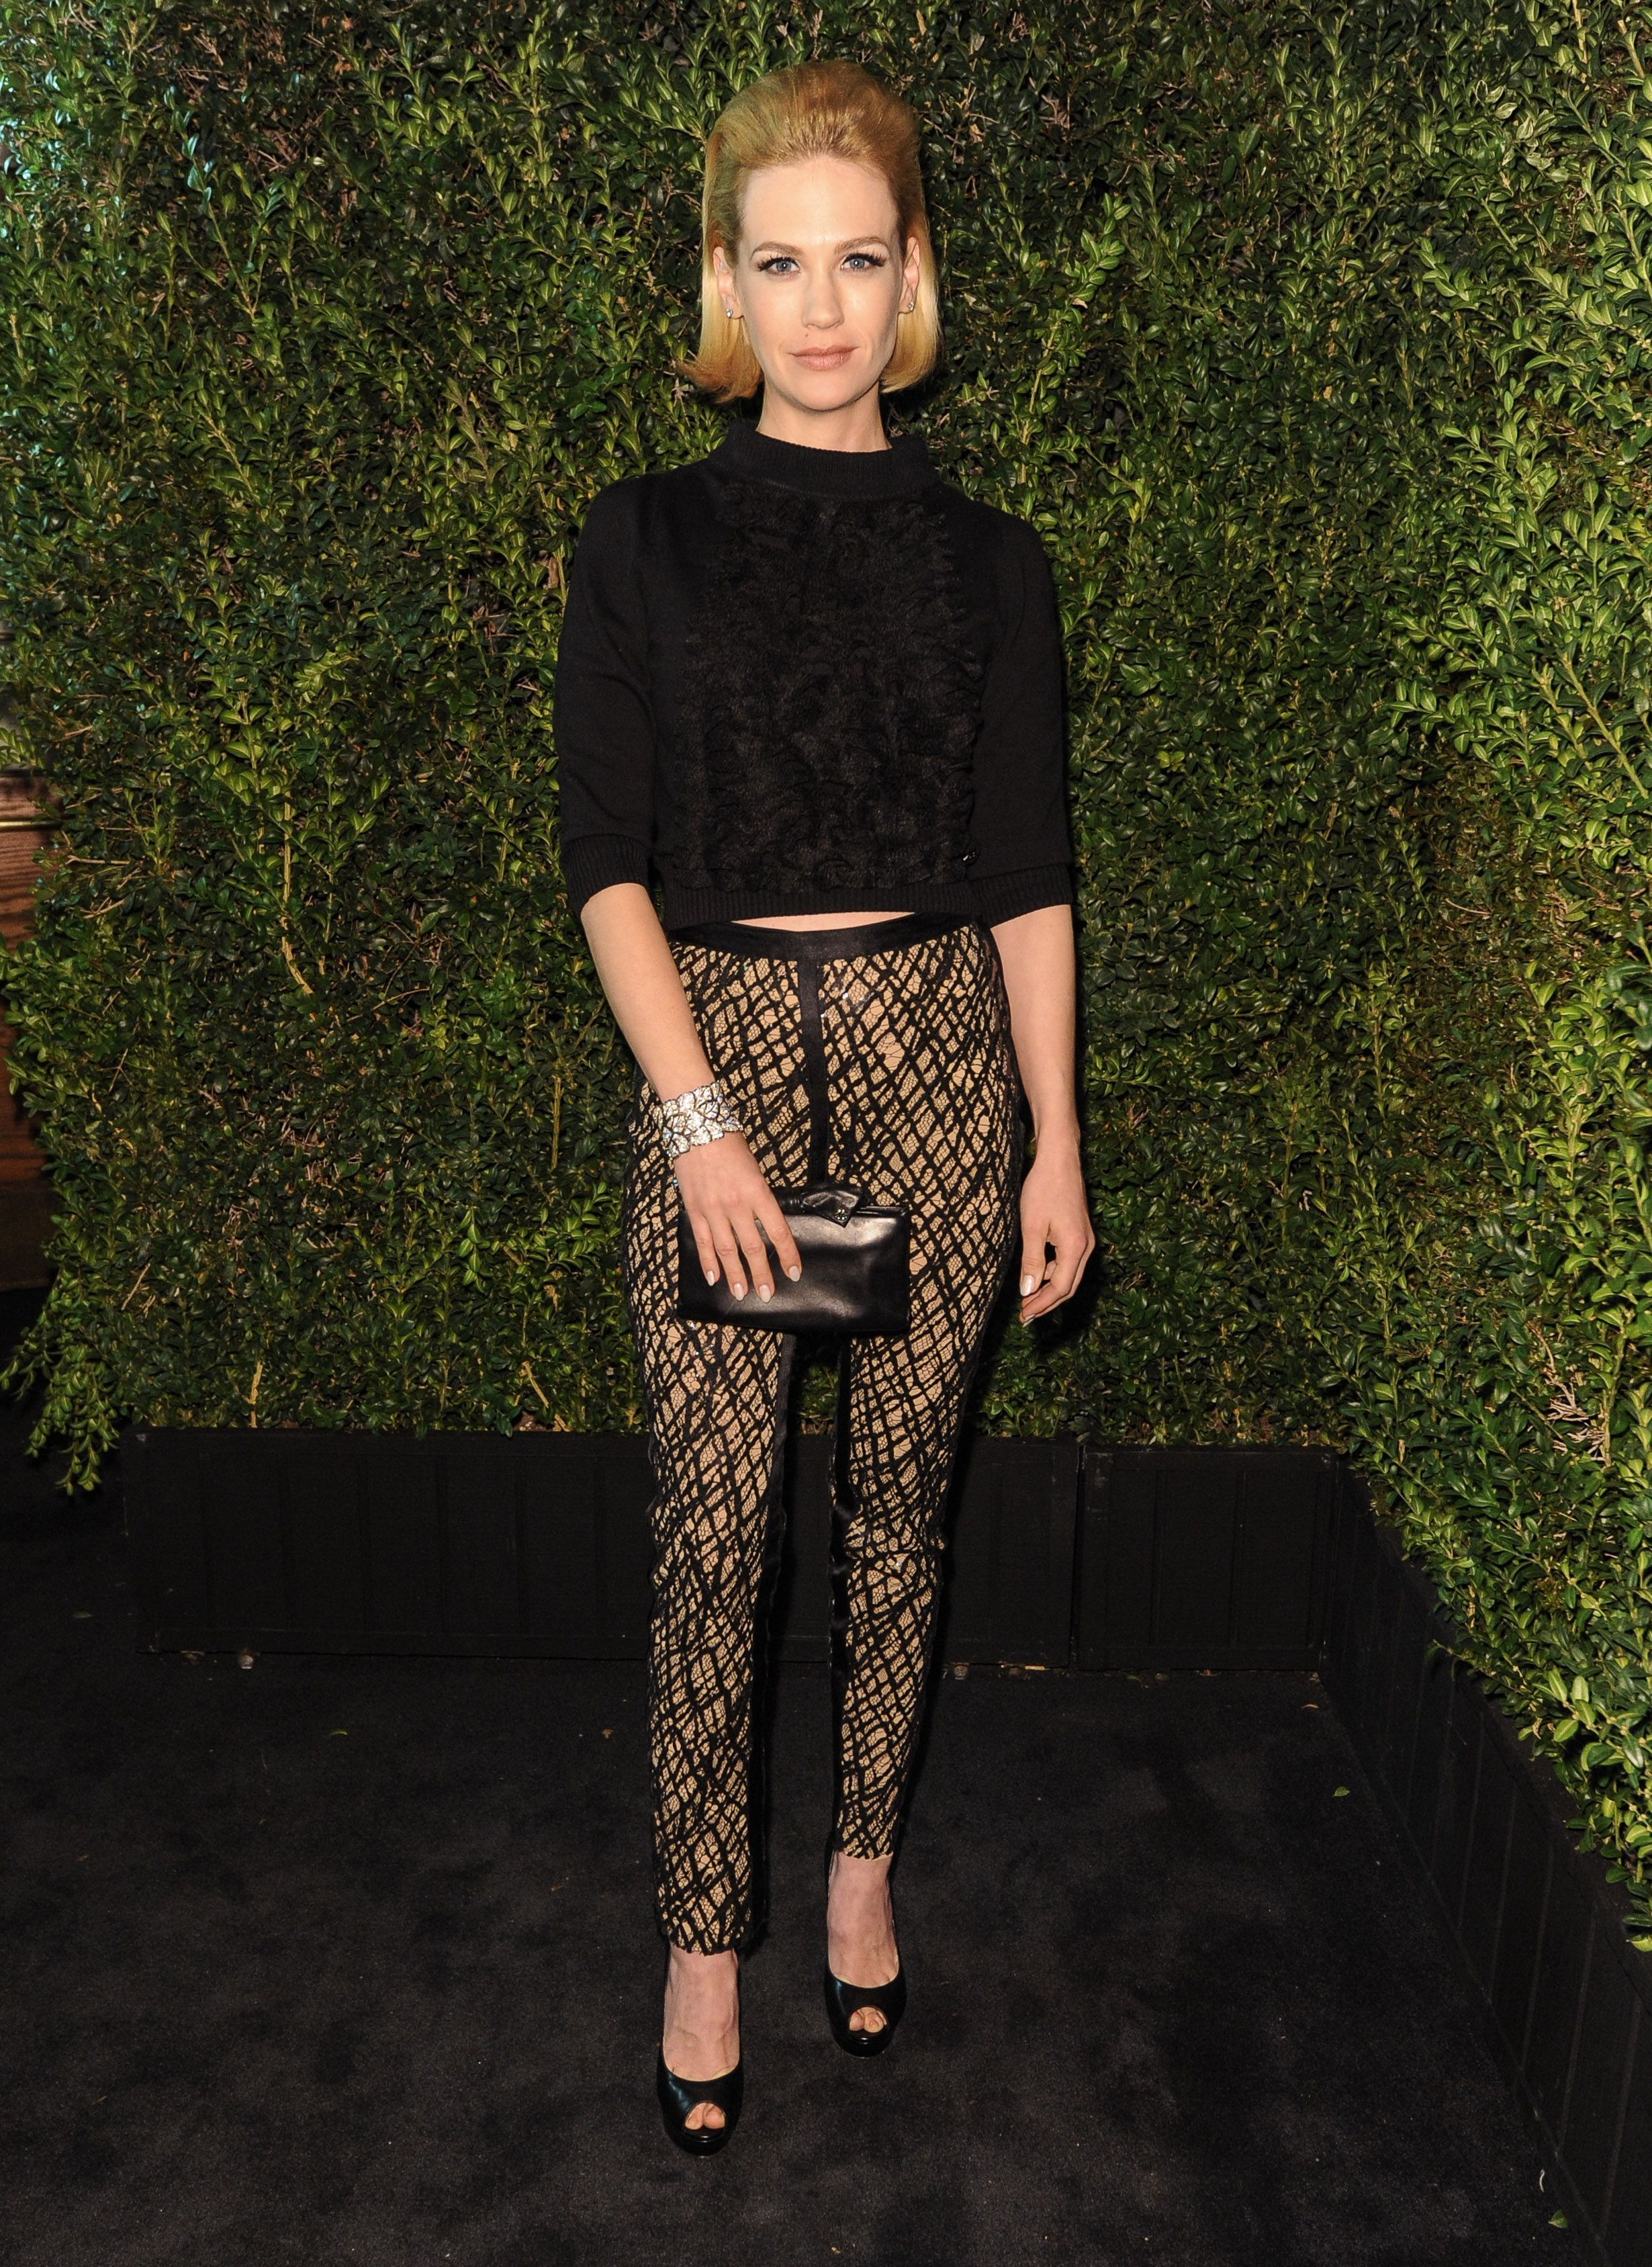 January Jones attends the the Charles Finch and Chanel Pre Oscar Dinner in Los Angeles on Feb. 23, 2013.